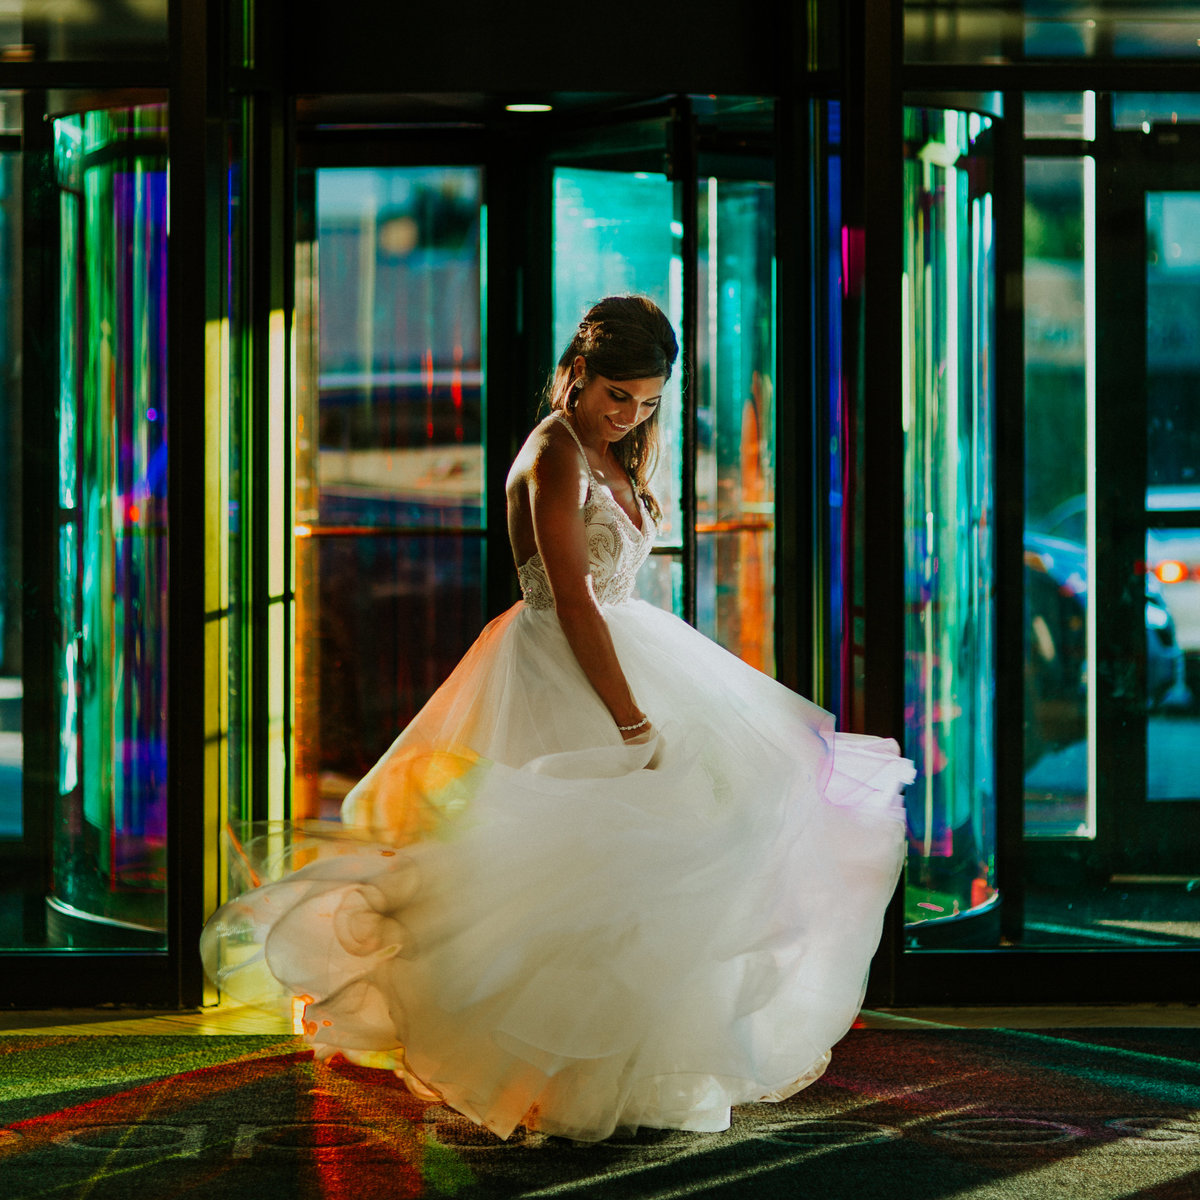 The bride spins as the colorful lights shine through the windows and her Miss Hayley Paige wedding gown.